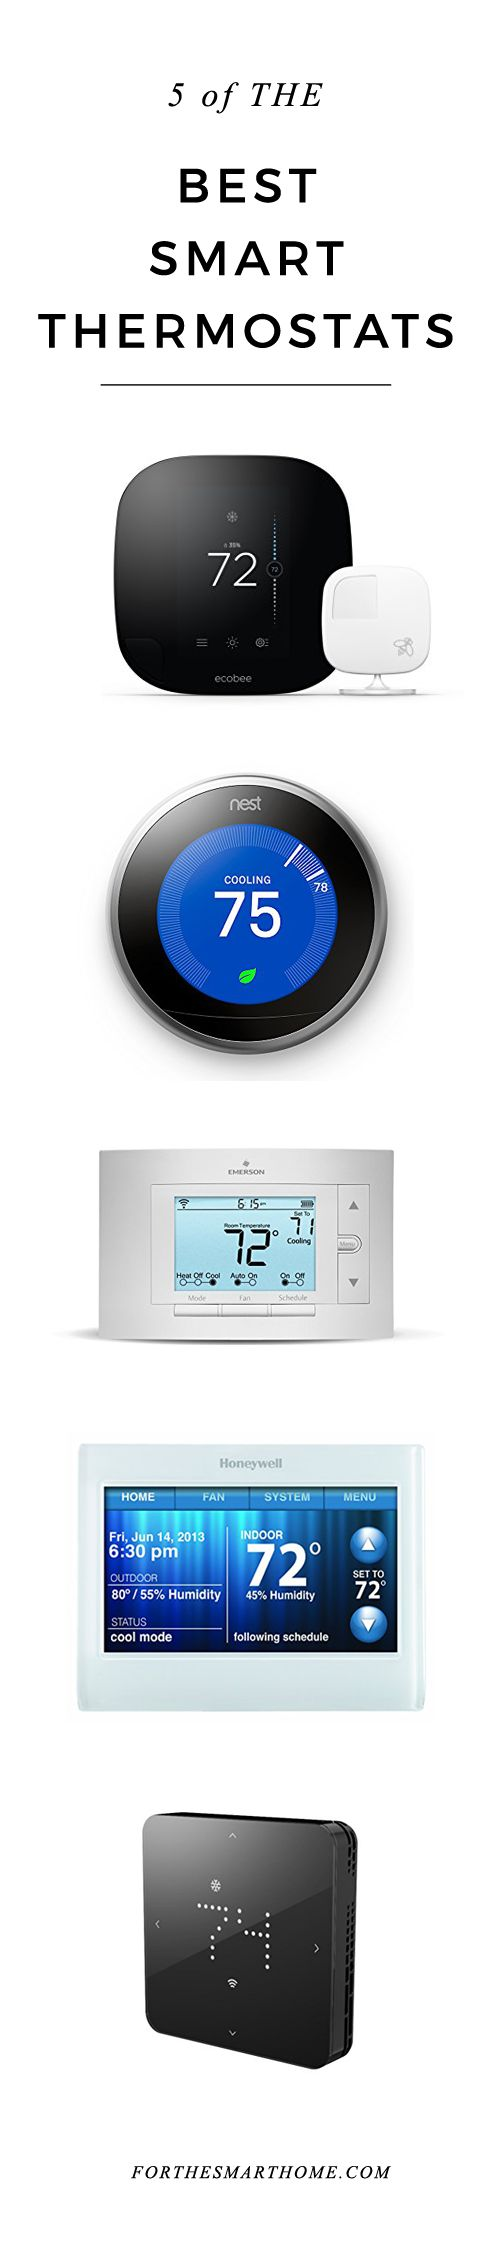 One of the cornerstones of smart home automation is the ability to intelligently control the temperature in every room. Take full command over the climate of your home with our comprehensive guide to the very best smart thermostats for the interconnected interior space.